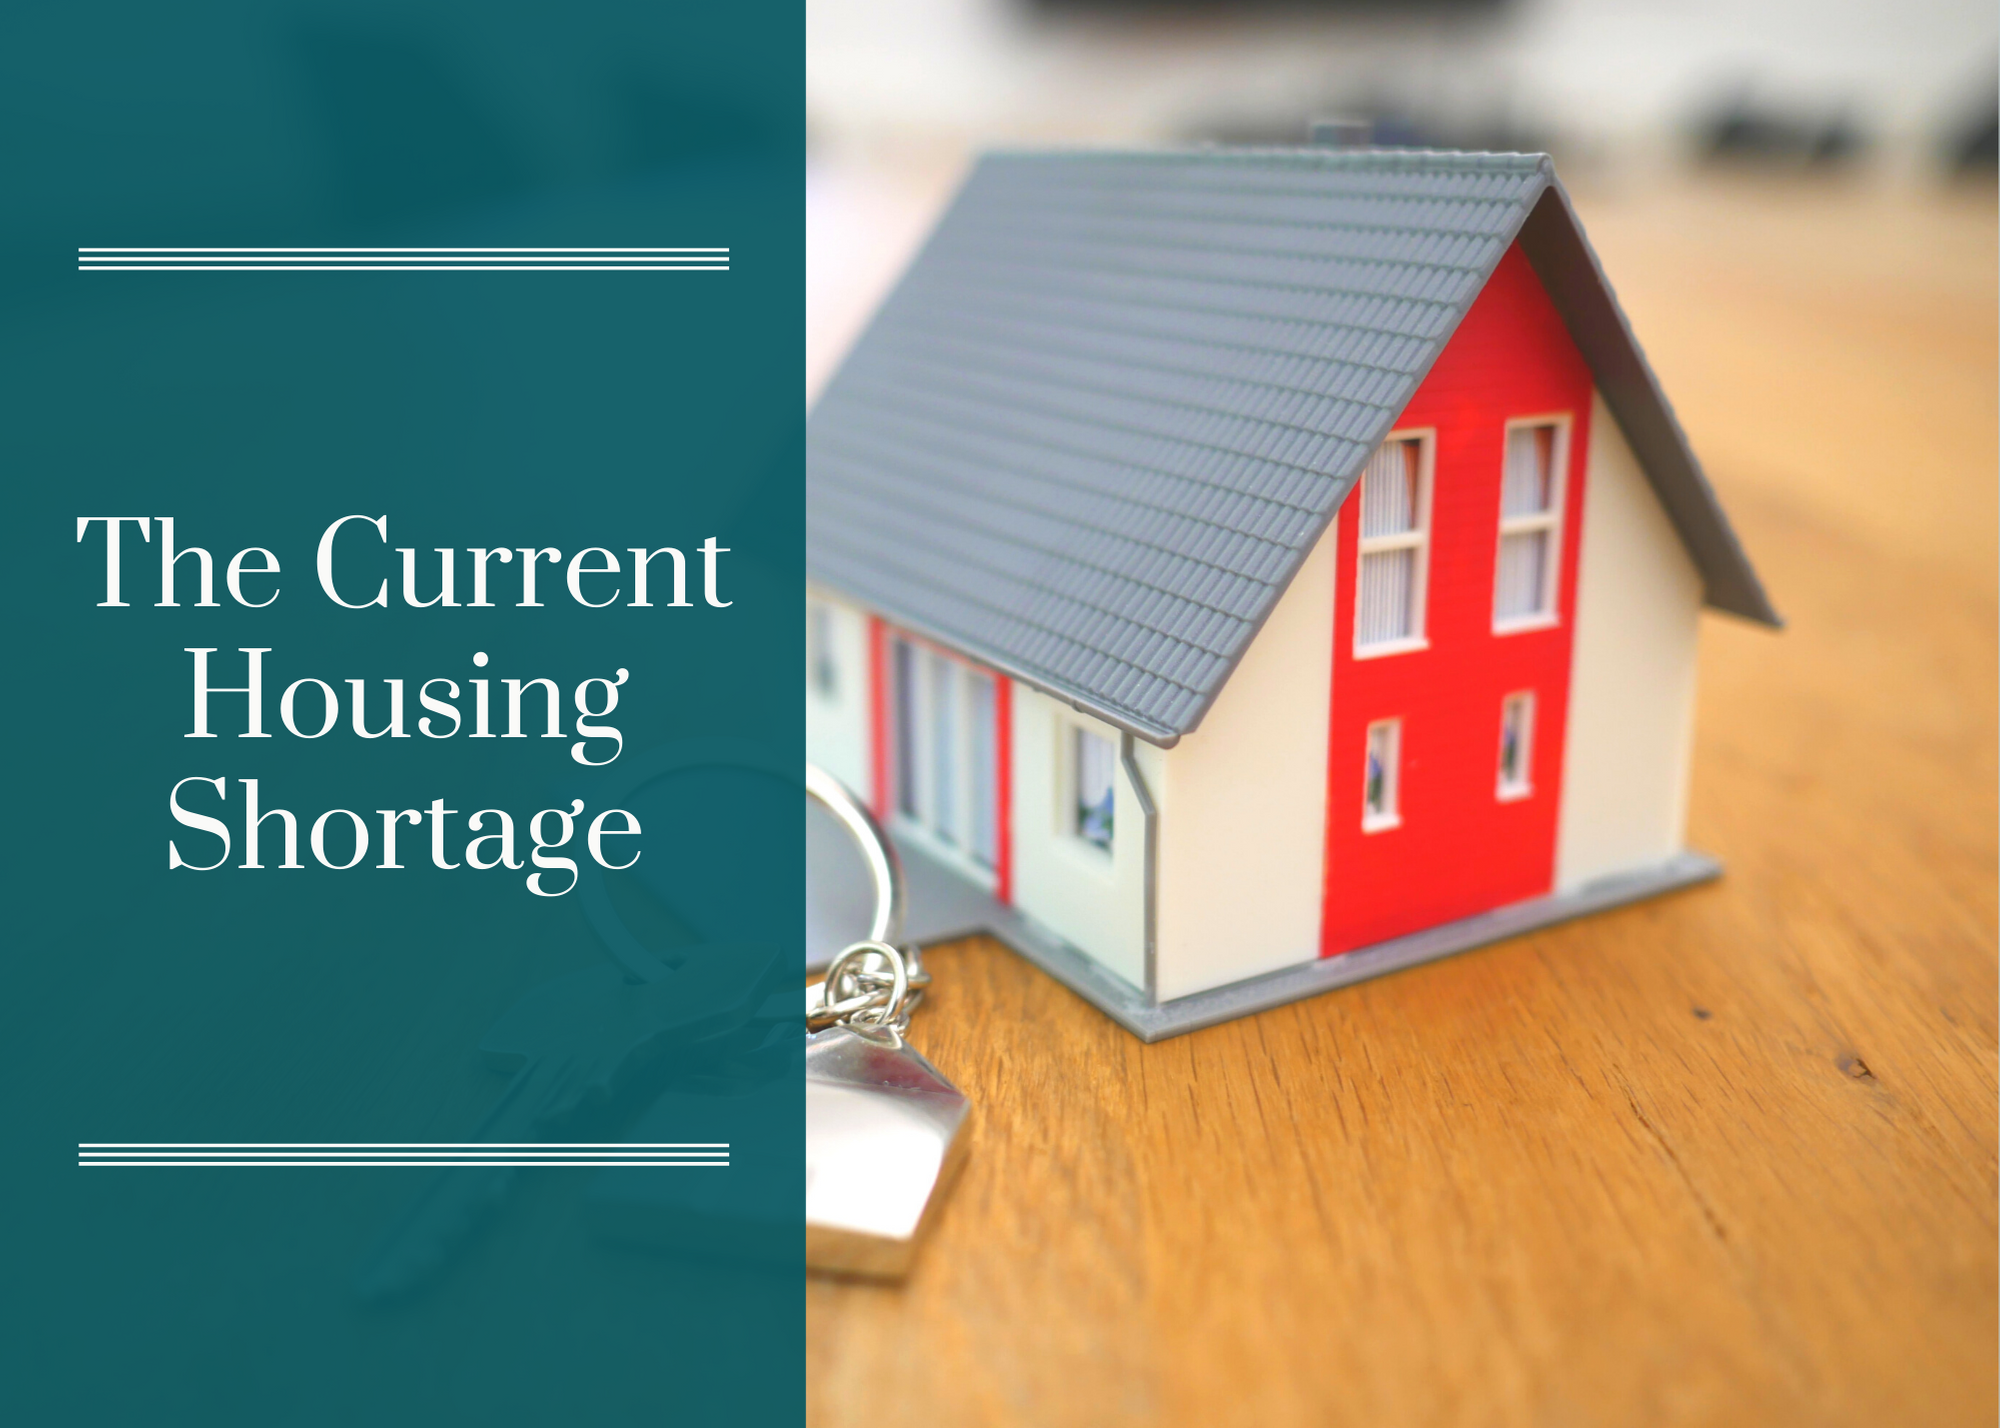 The Current Housing Shortage